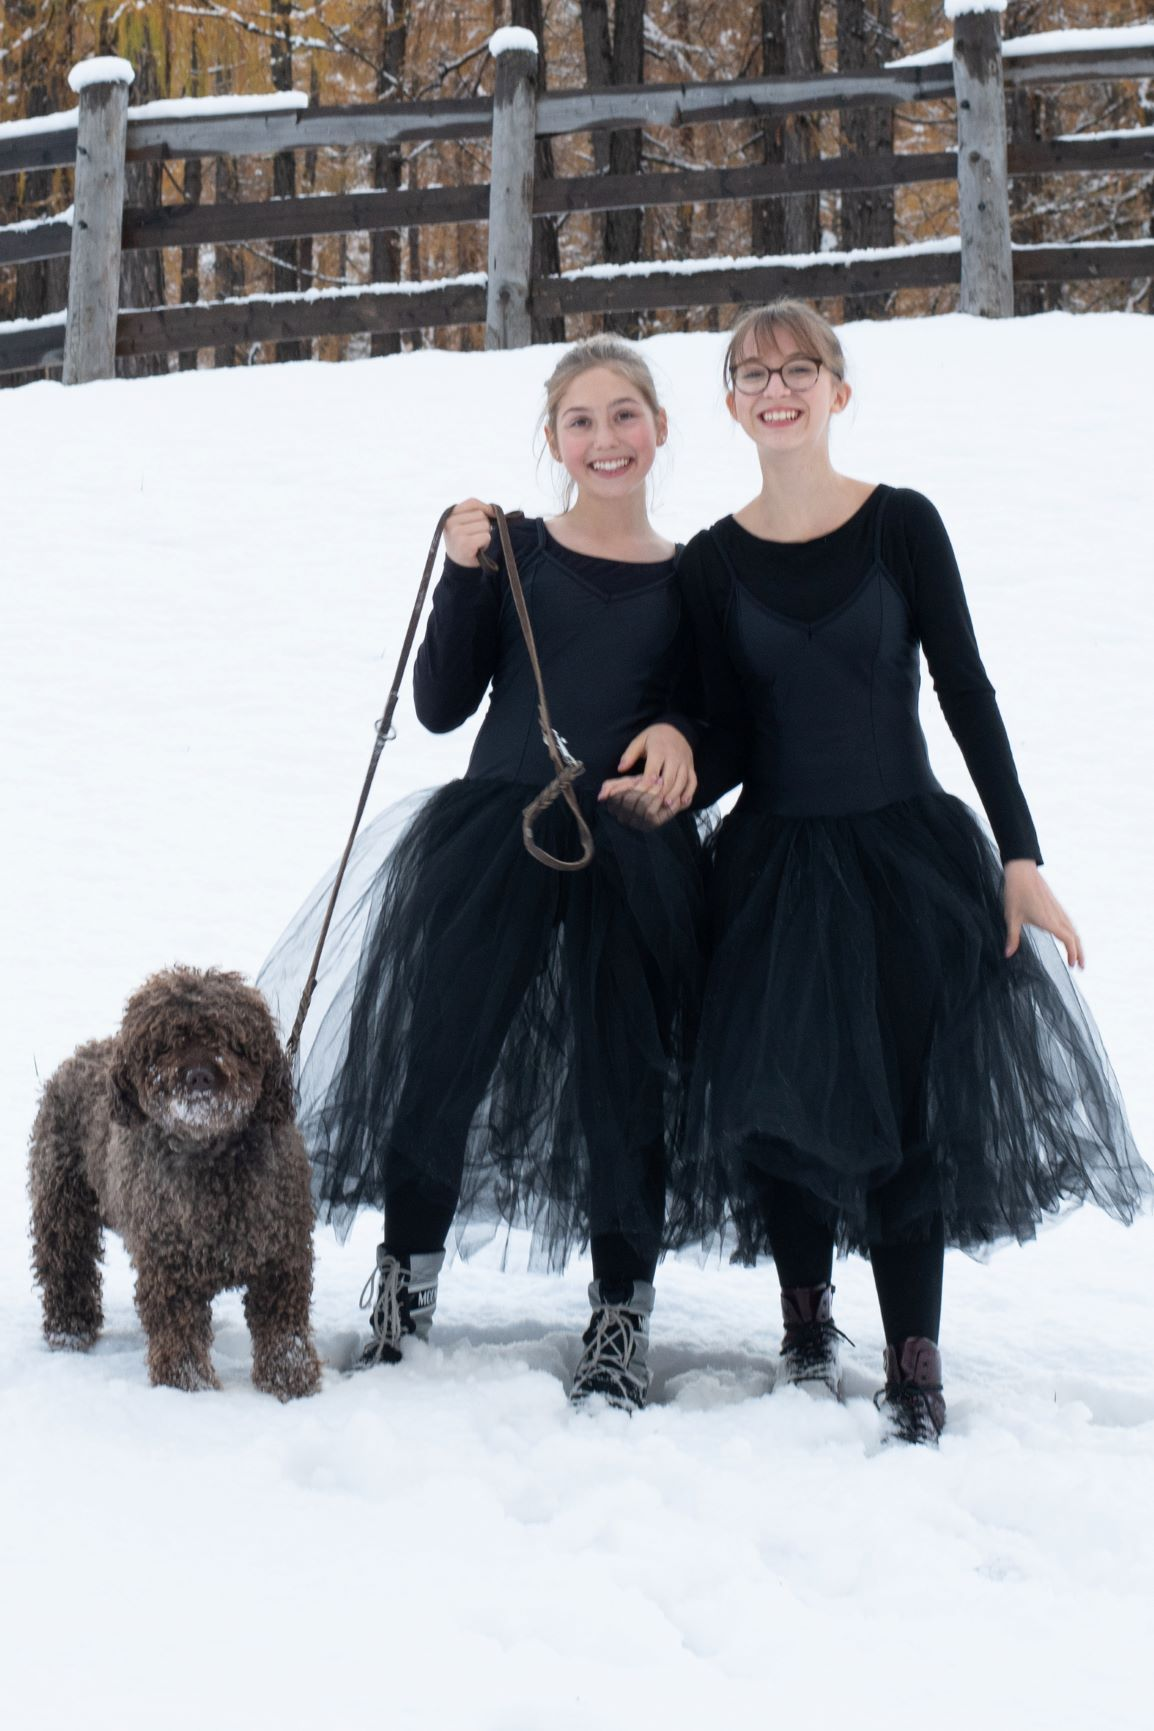 Ballerinas in Snow with Dog - Photo © Daniela Brugger